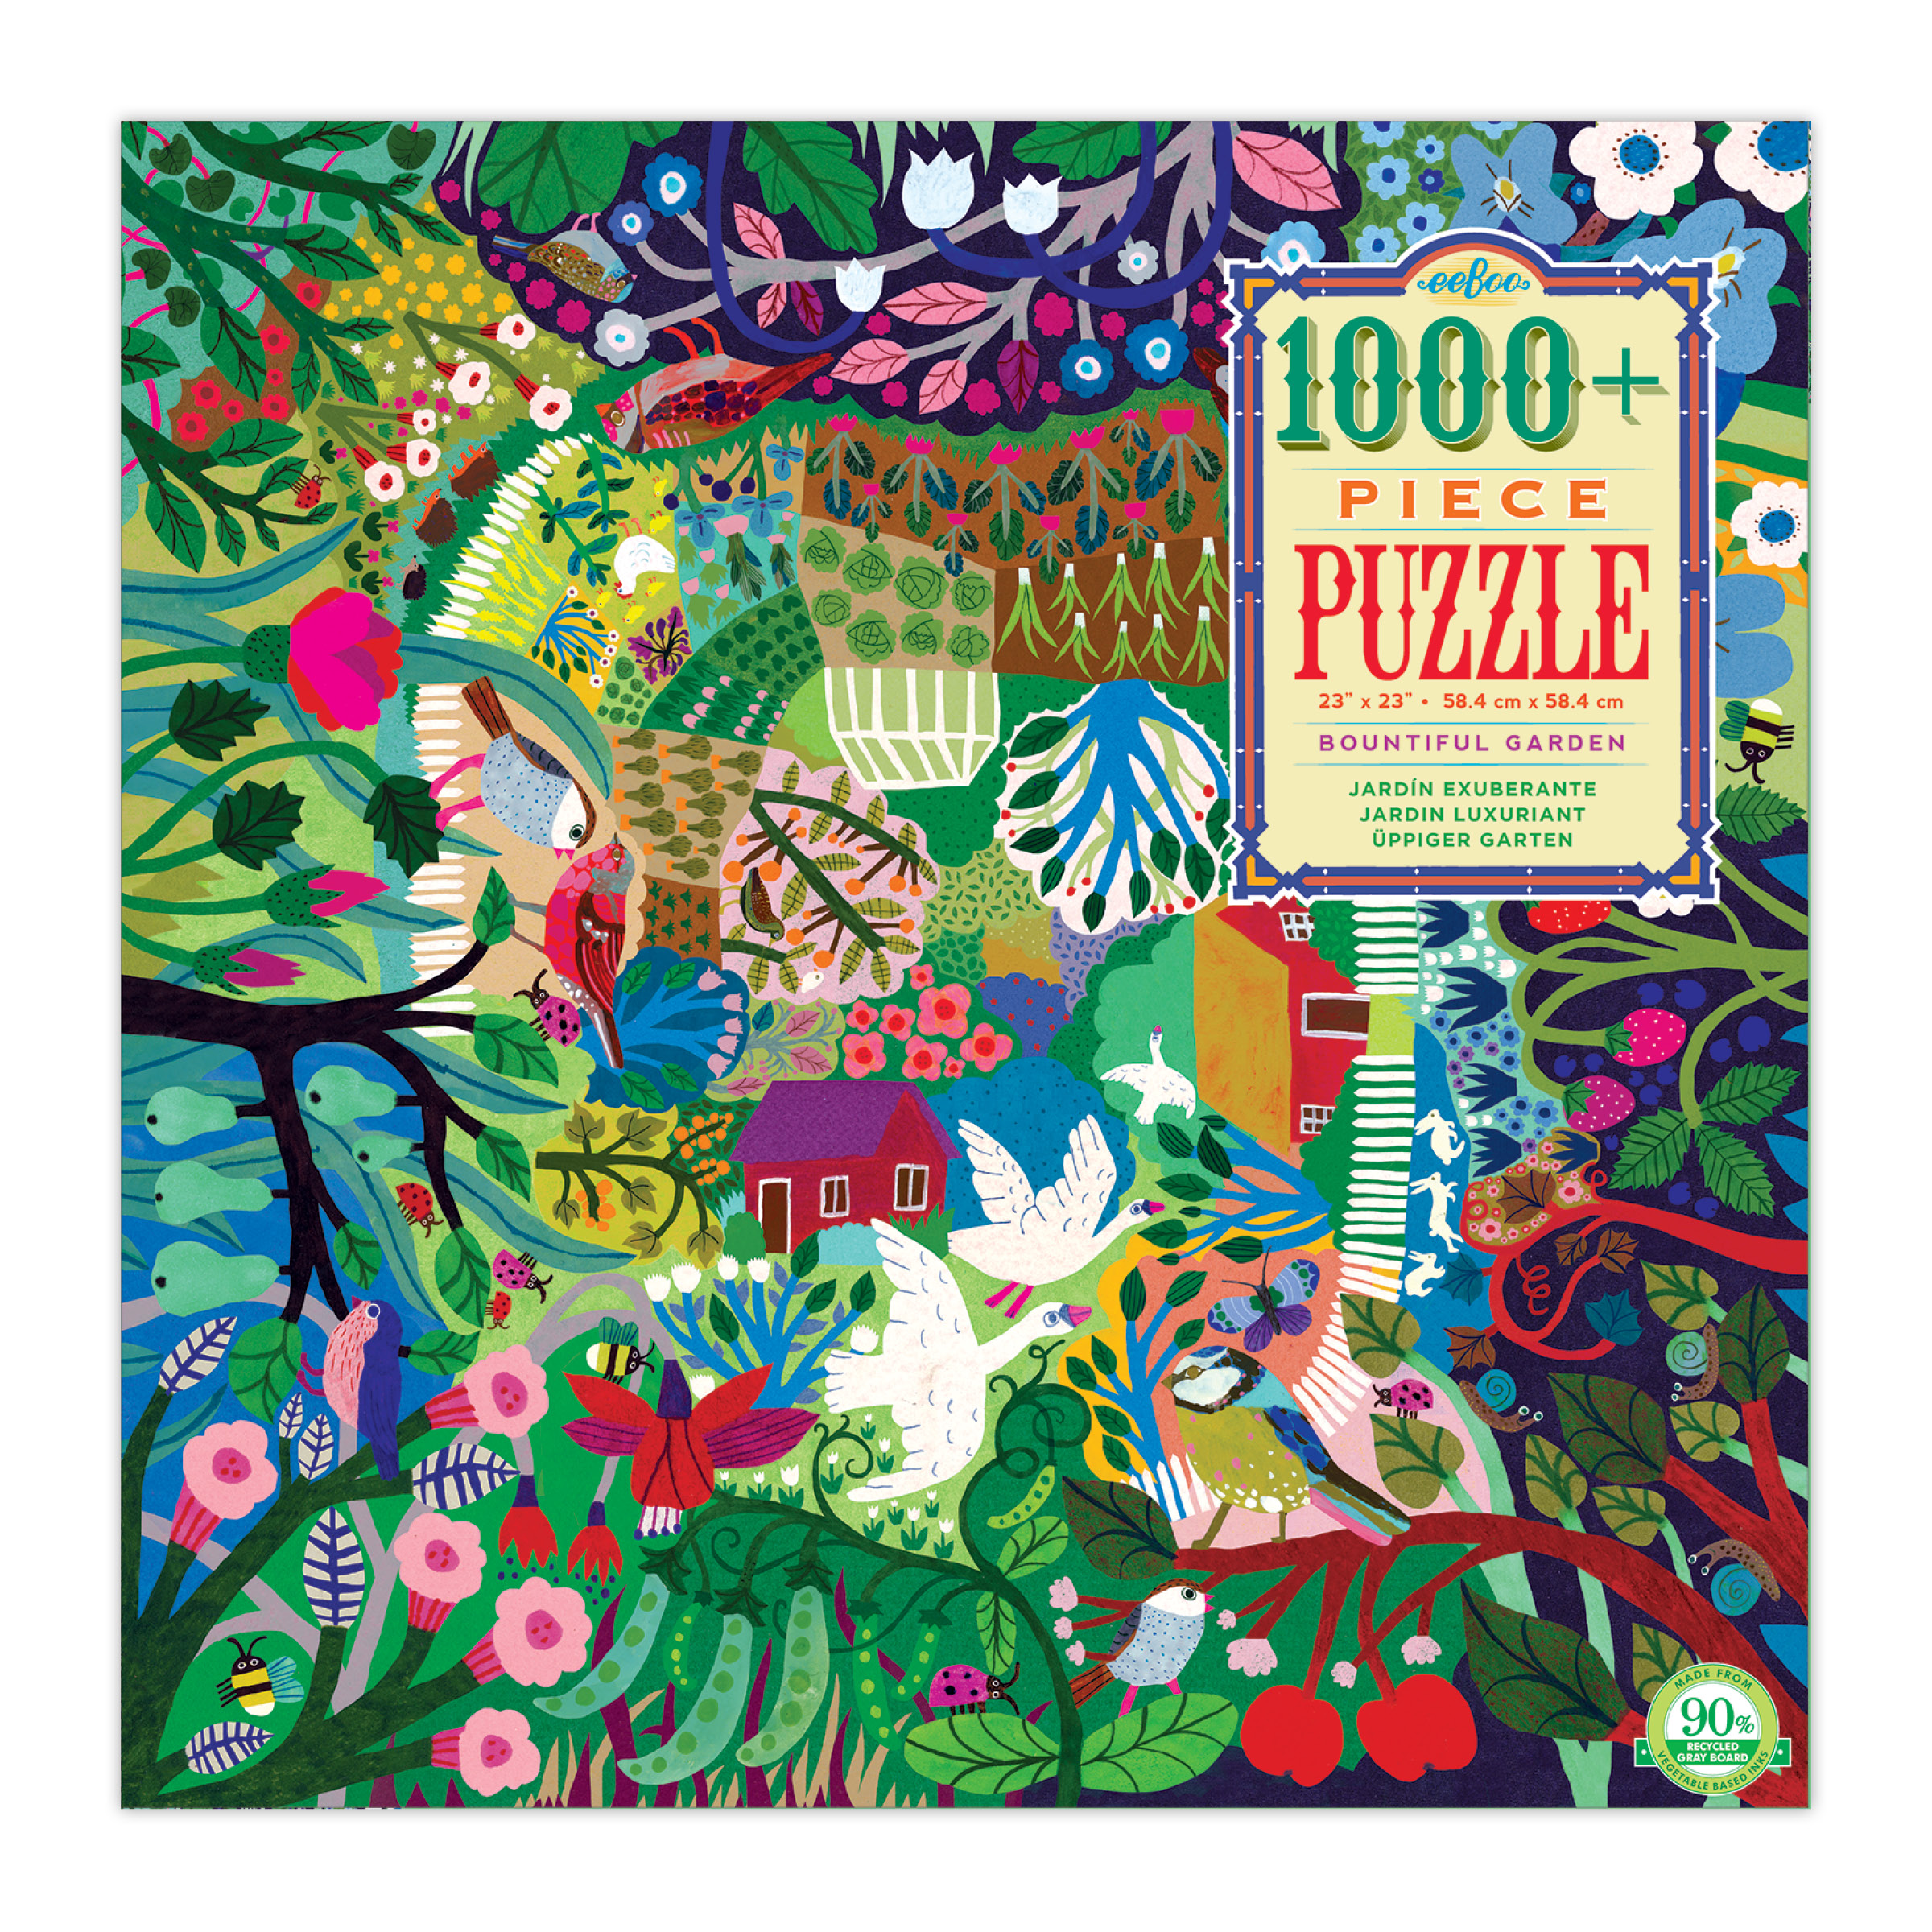 Bountiful Garden 1000 Piece Jigsaw Puzzle by eeBoo